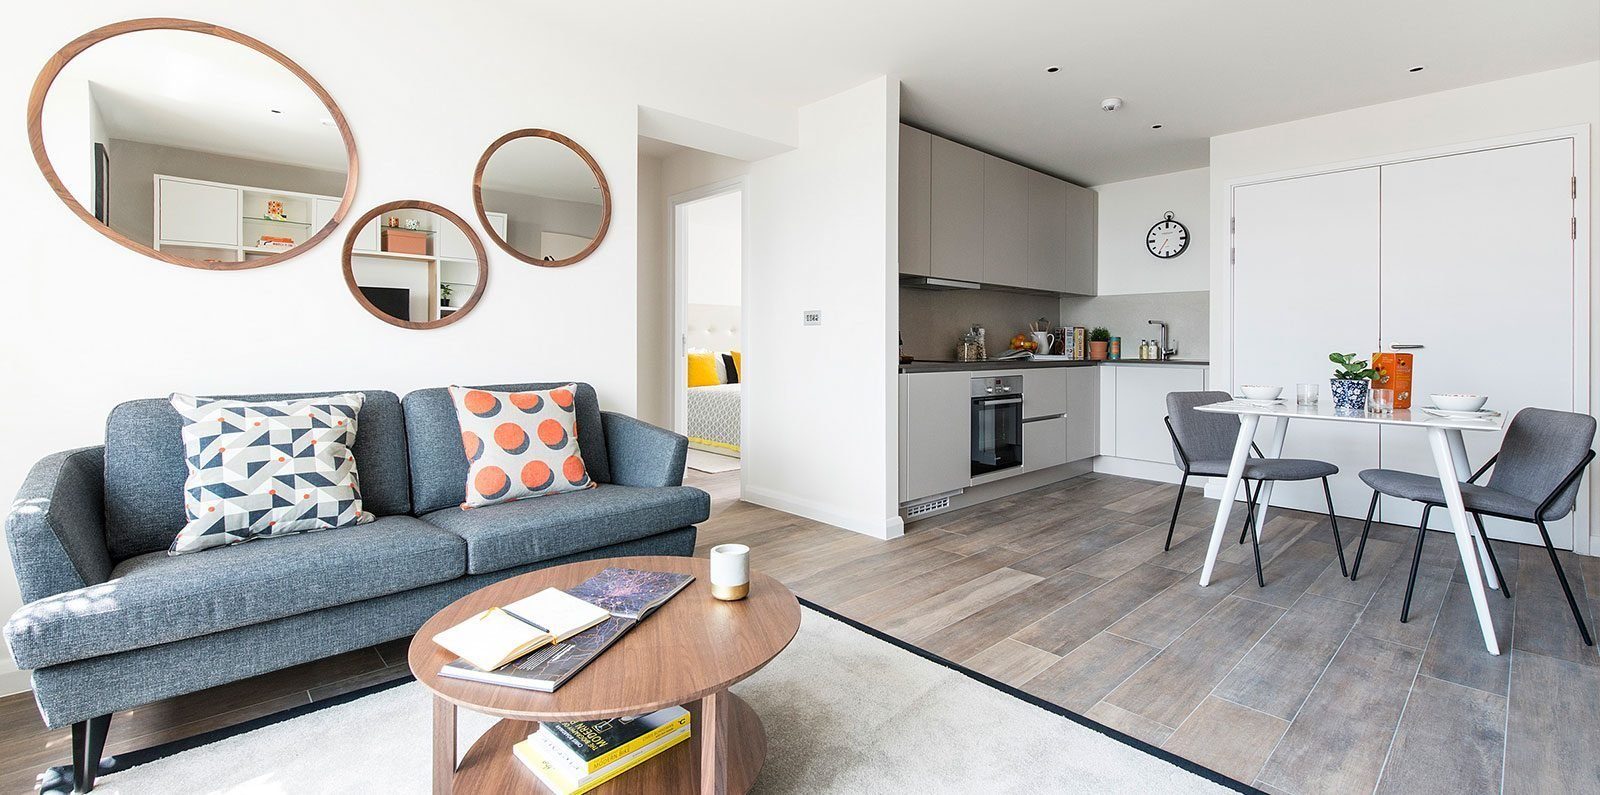 Best 1 Bedroom Apartments To Rent In London Essential Living With Pictures Original 1024 x 768